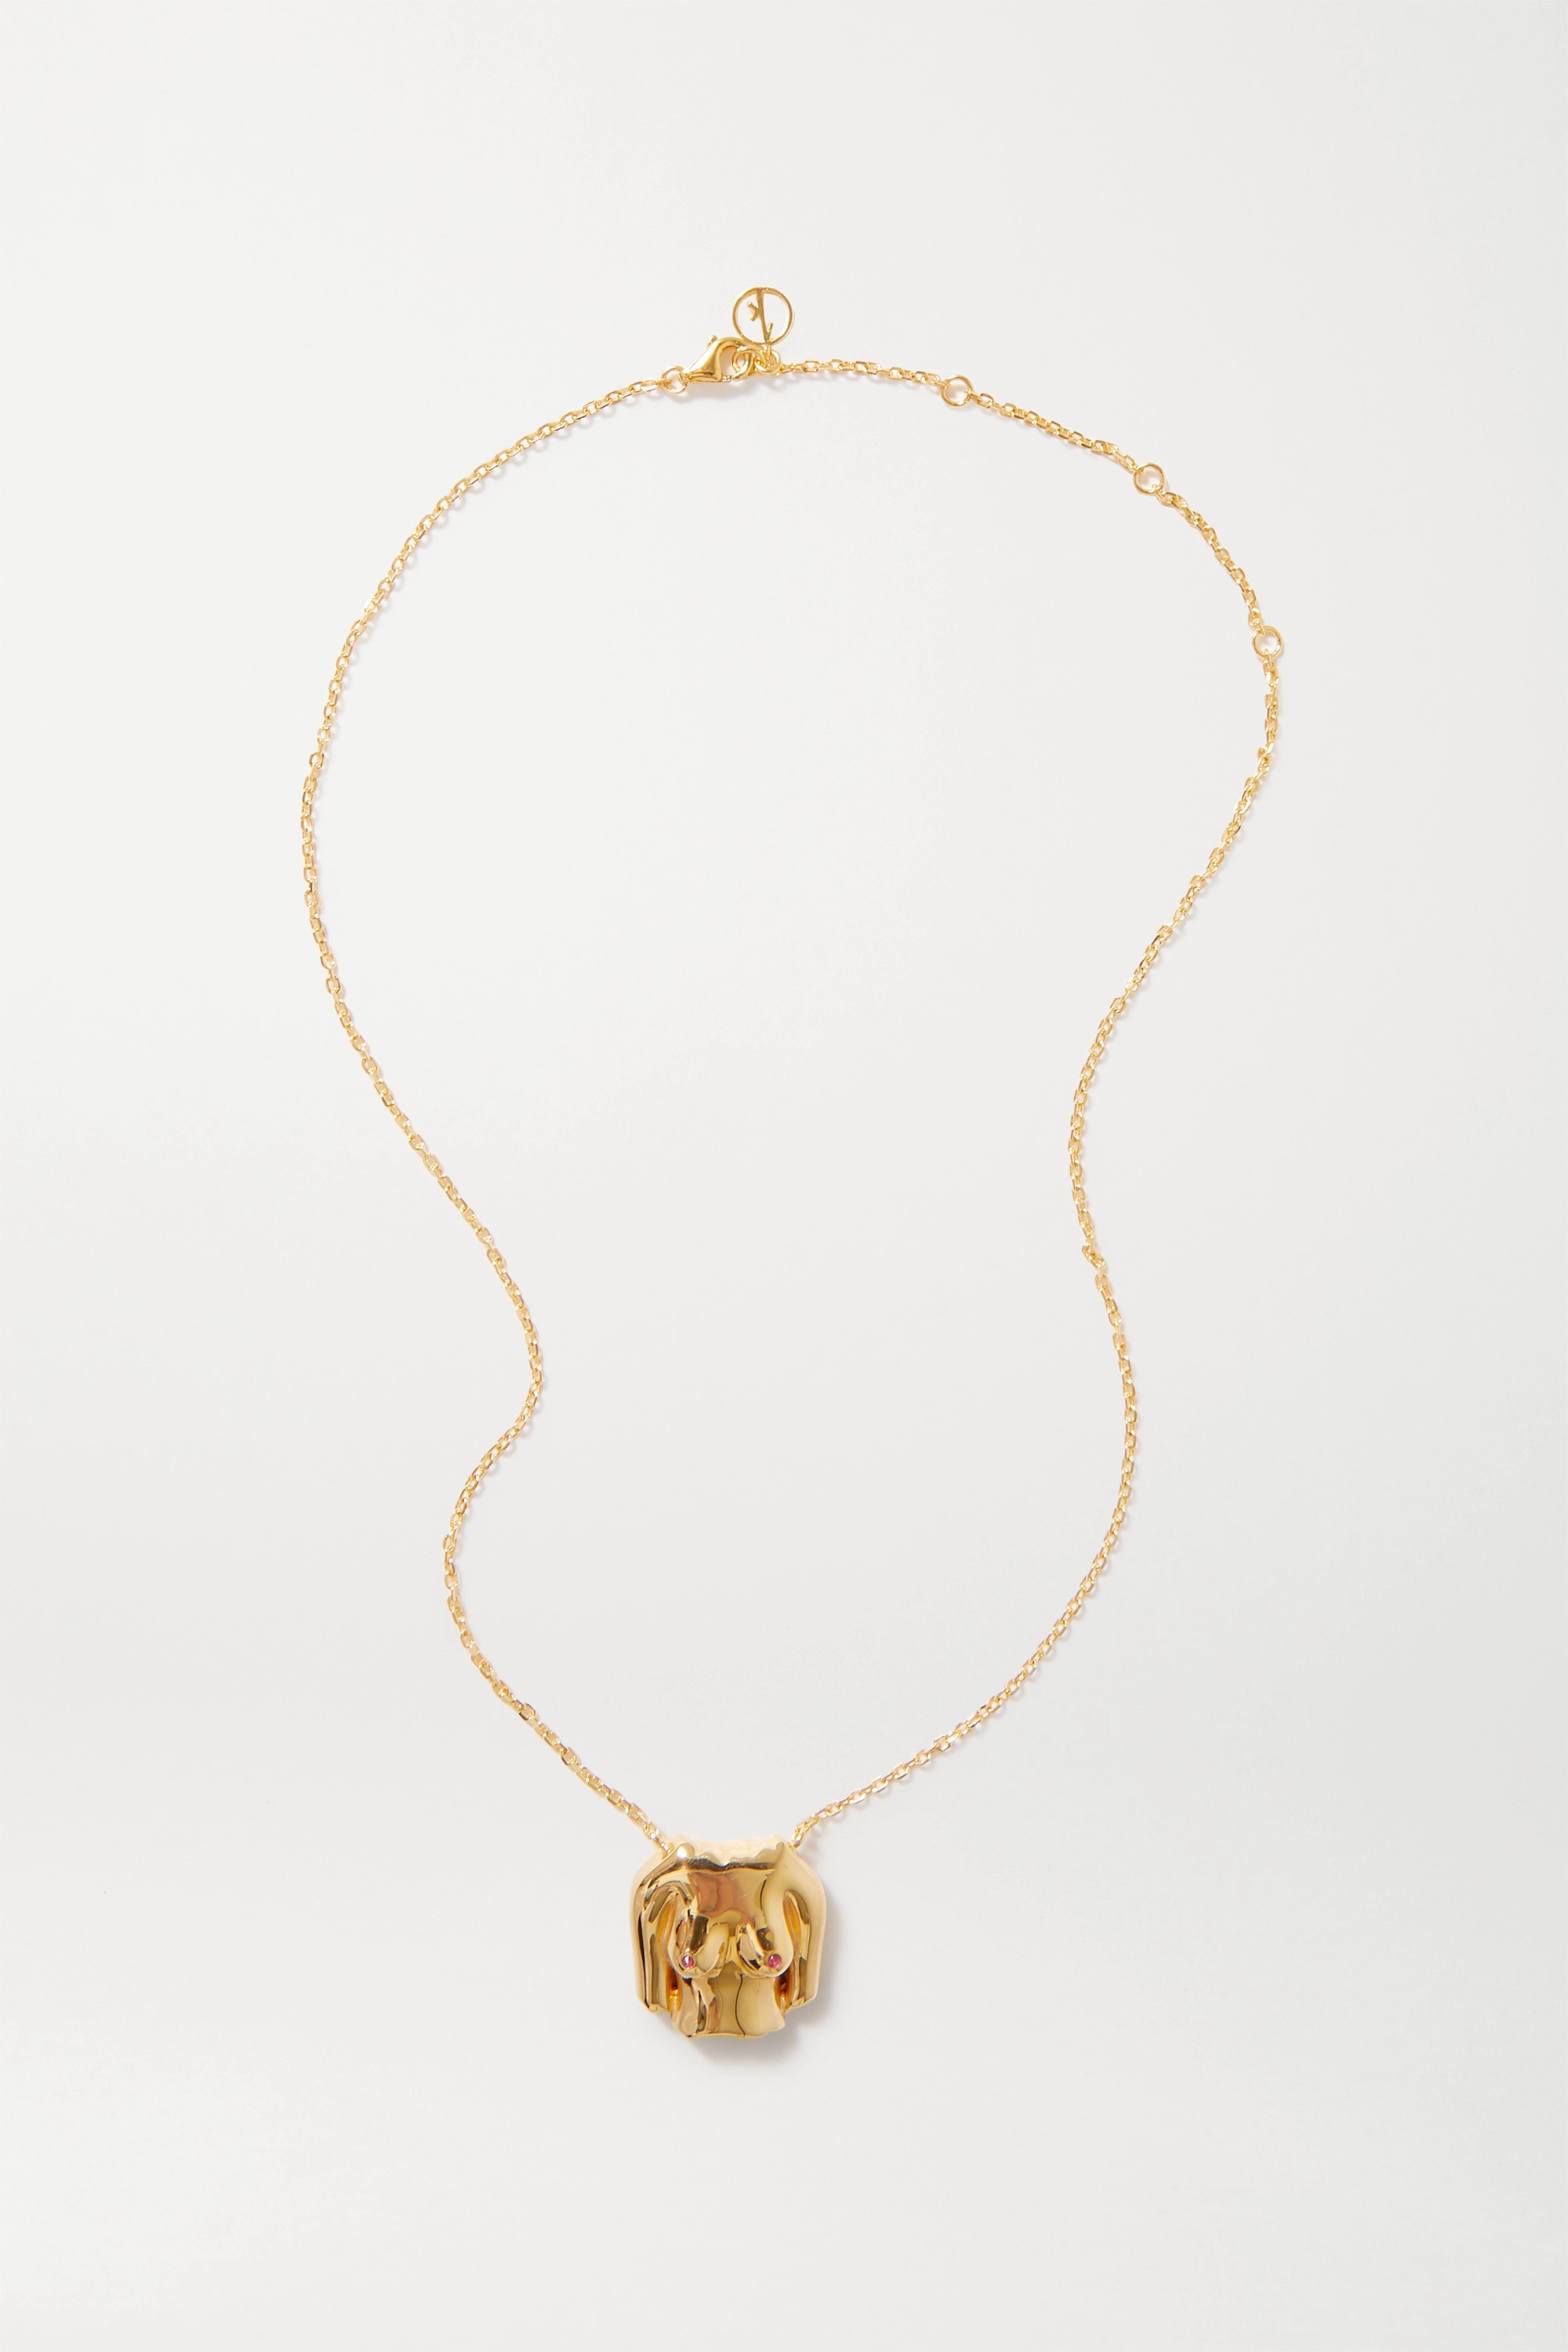 Anissa Kermiche Rubies Boobies gold-plated ruby necklace